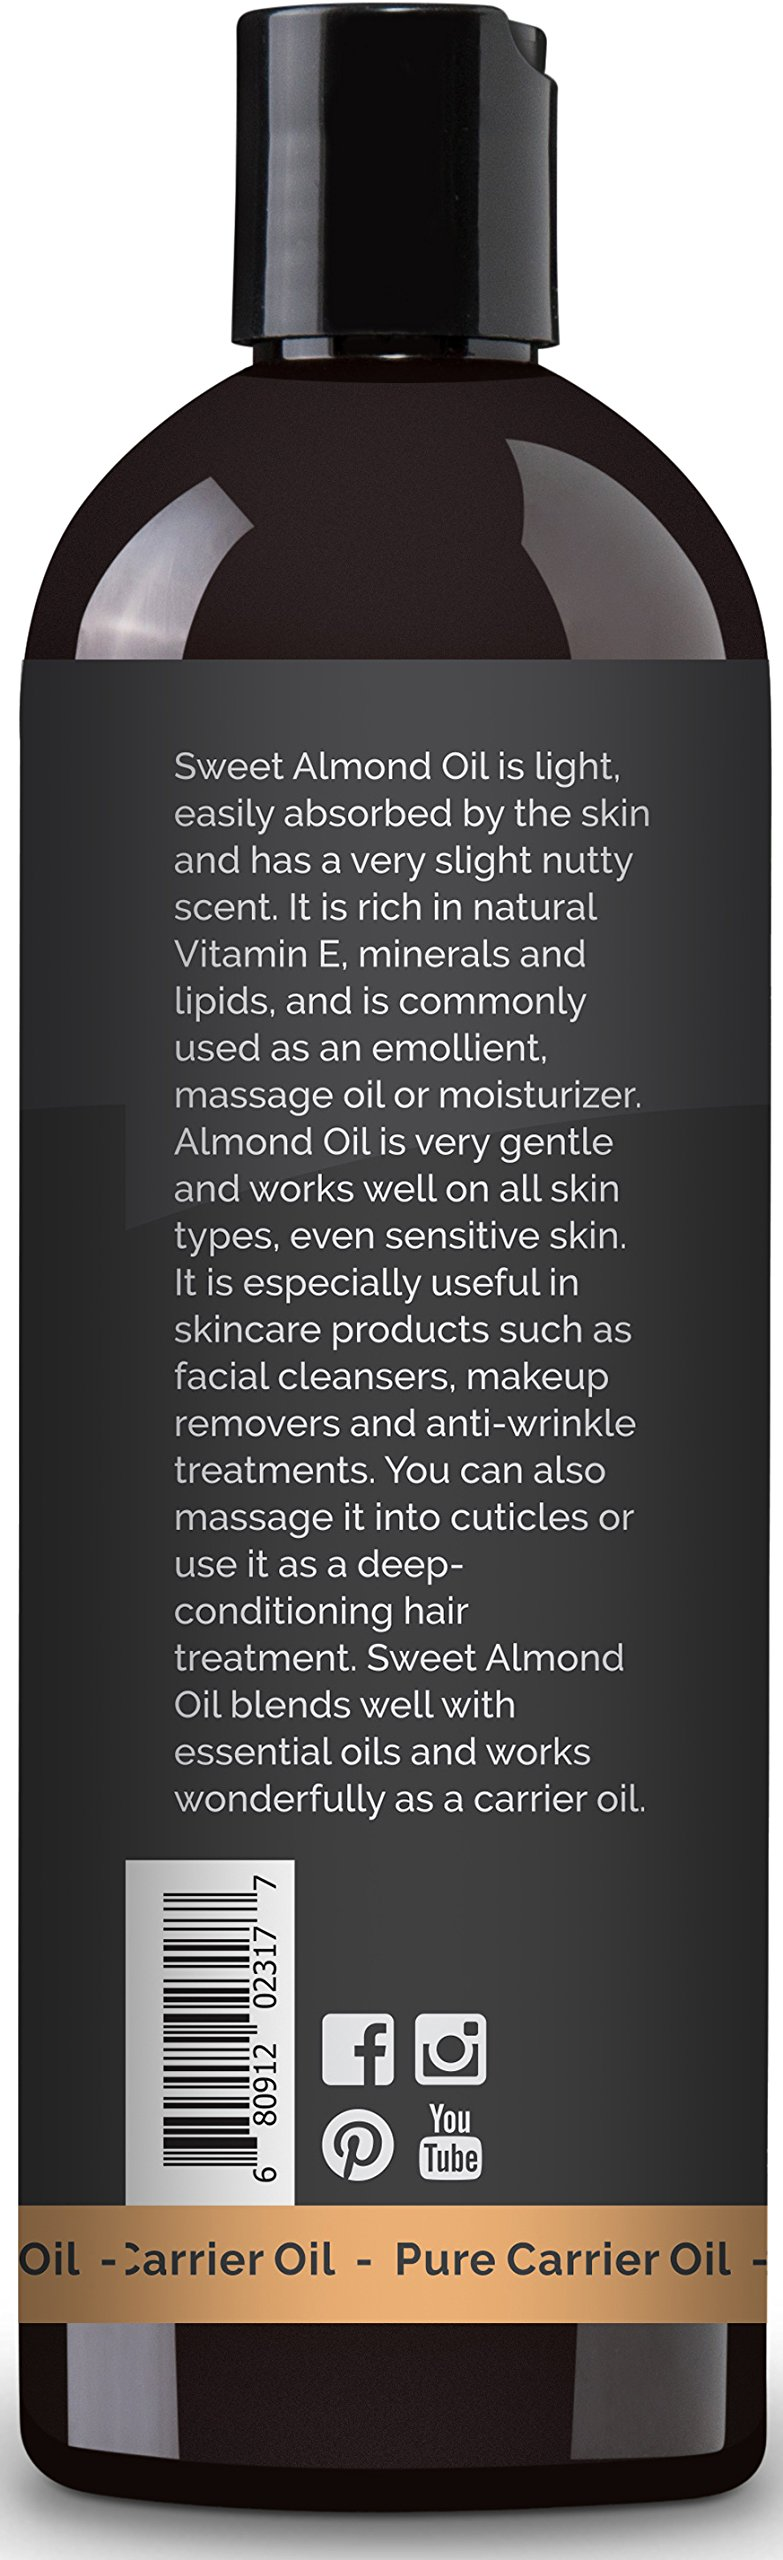 Plant Therapy Sweet Almond Carrier Oil + PUMP. A Base Oil for Aromatherapy, Essential Oil or Massage Use. 16 oz. by Plant Therapy (Image #4)